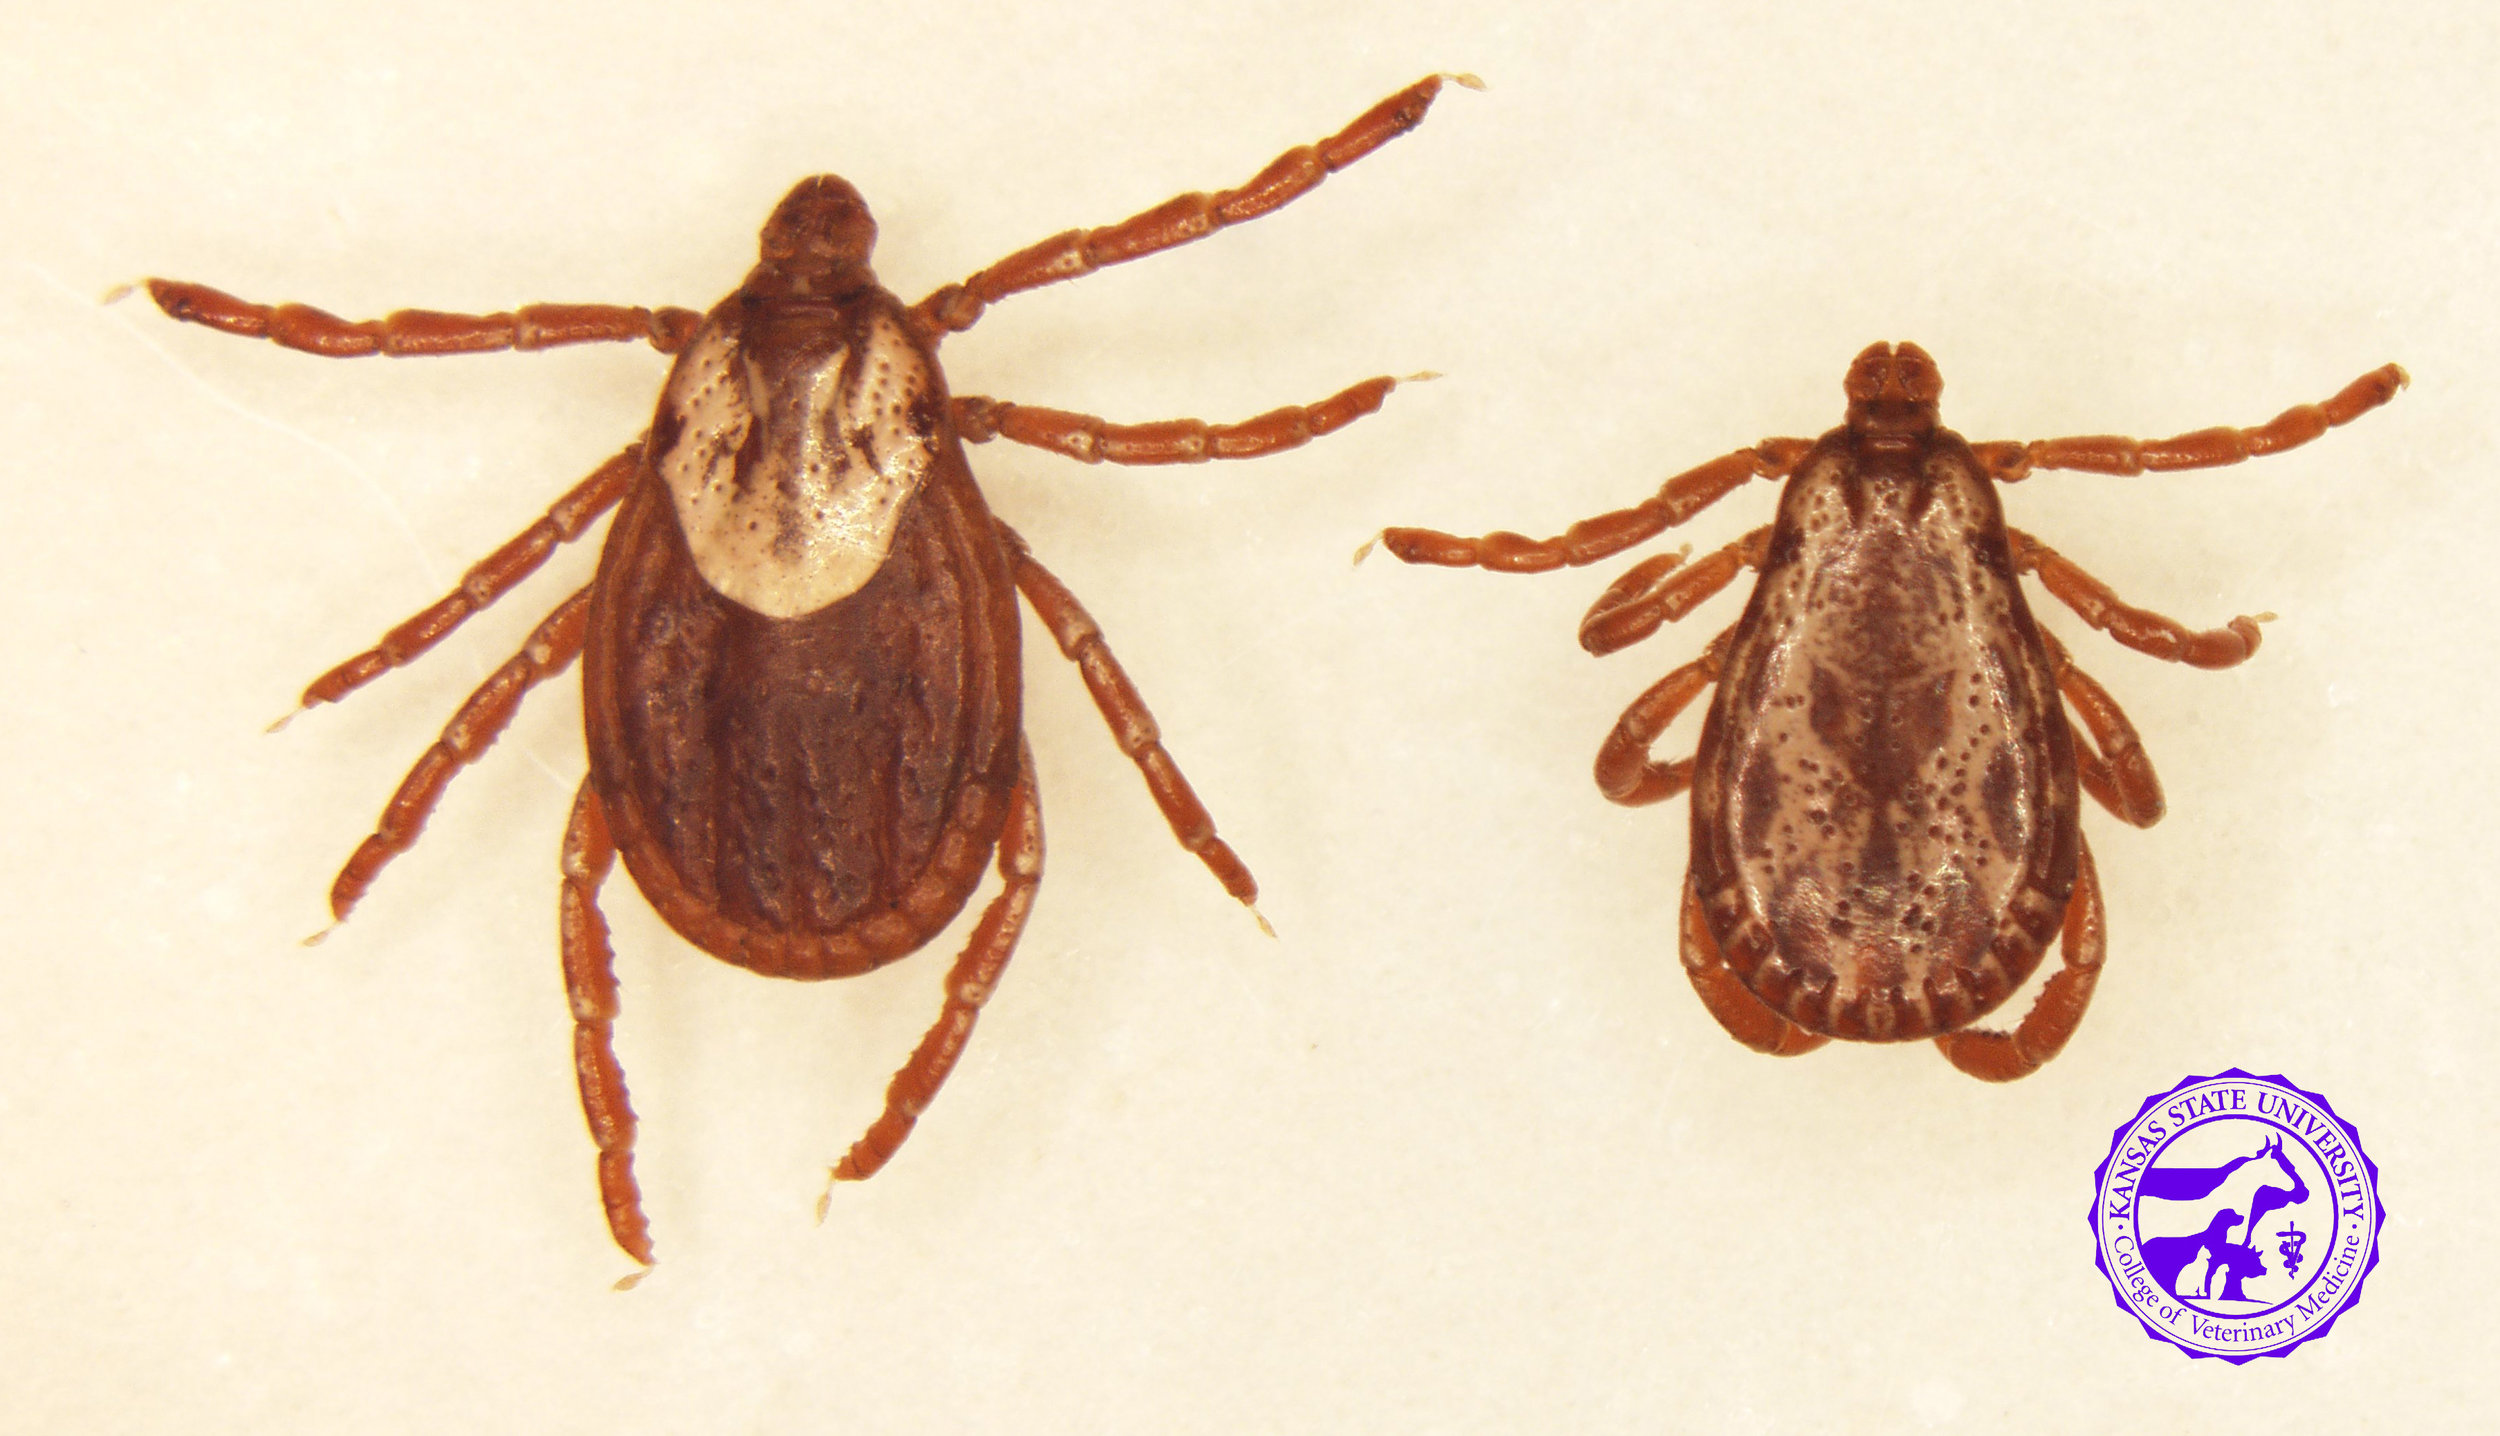 American Dog Tick/ Rocky Mountain Wood Tick   Dermacentor variabilis / Dermacentor andersoni   These ticks look identical, and DNA must be analyzed to accurately identify.   Range -  D. variabilis-  throughout US, except the Rocky Mountains   D. andersoni-  confined to Rocky Mountains   Active season - spring, early summer   Disease transmission to horses-  inflammation, open wounds and proud flesh   Disease transmission to humans-  Rocky Mountain Spotted Fever